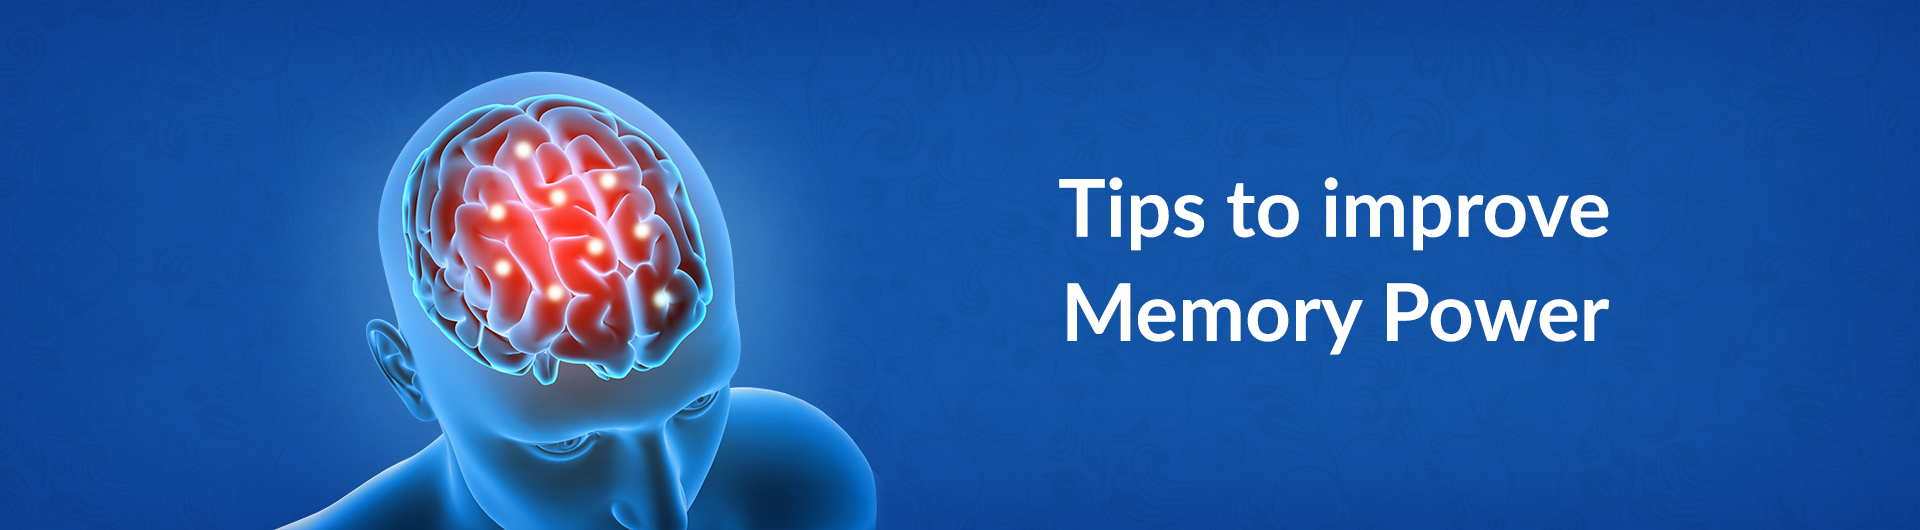 Tips to improve memory power